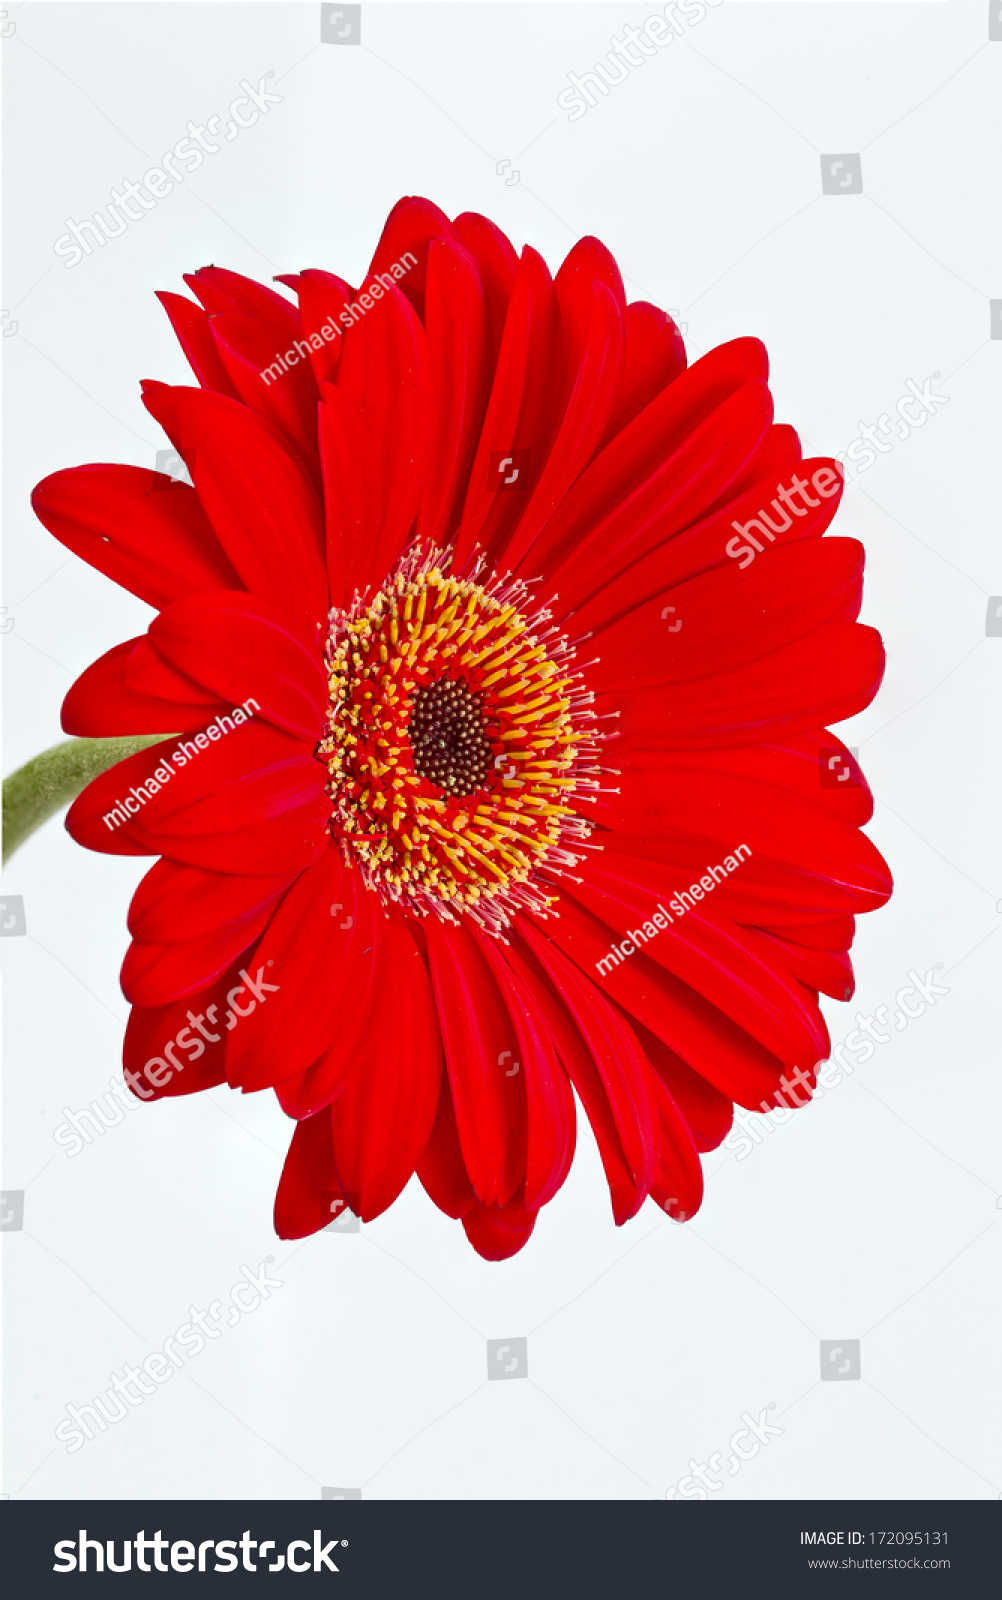 Single Red Gerbera Daisy Flower Isolated On A White Background Ez